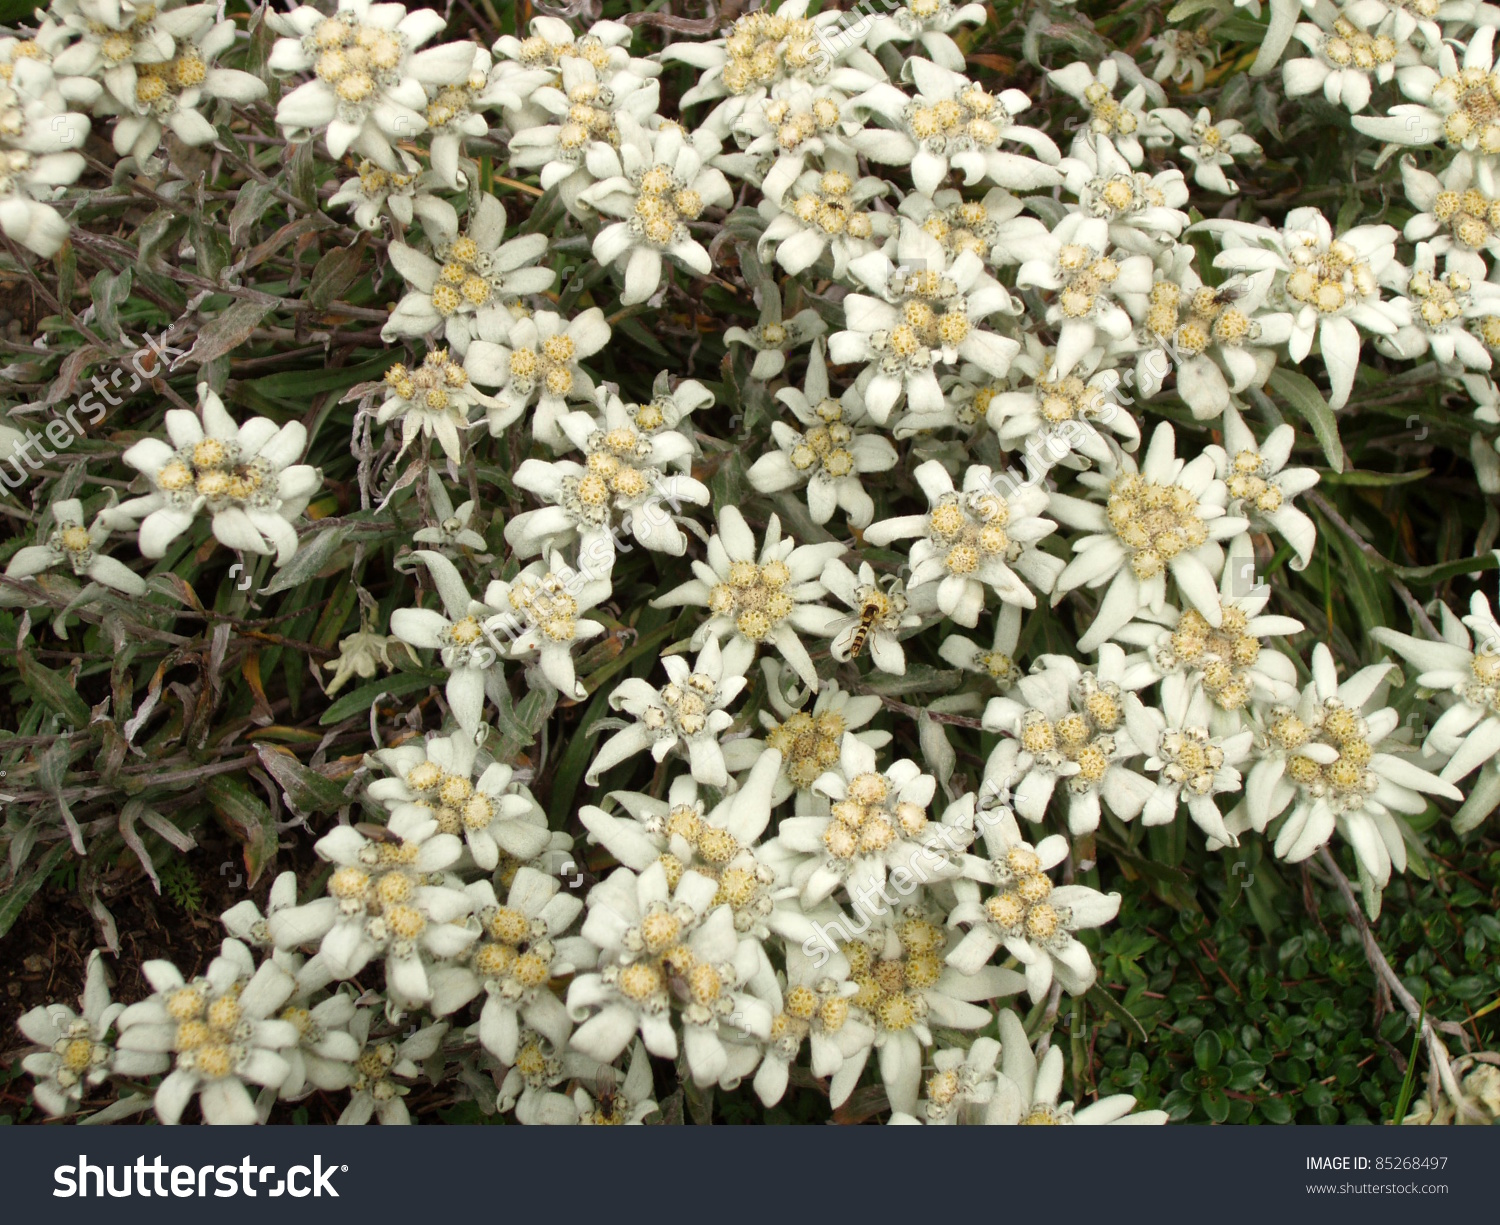 Switzerland Beautiful Alpine Flower Edelweiss Stock Photo 85268497.